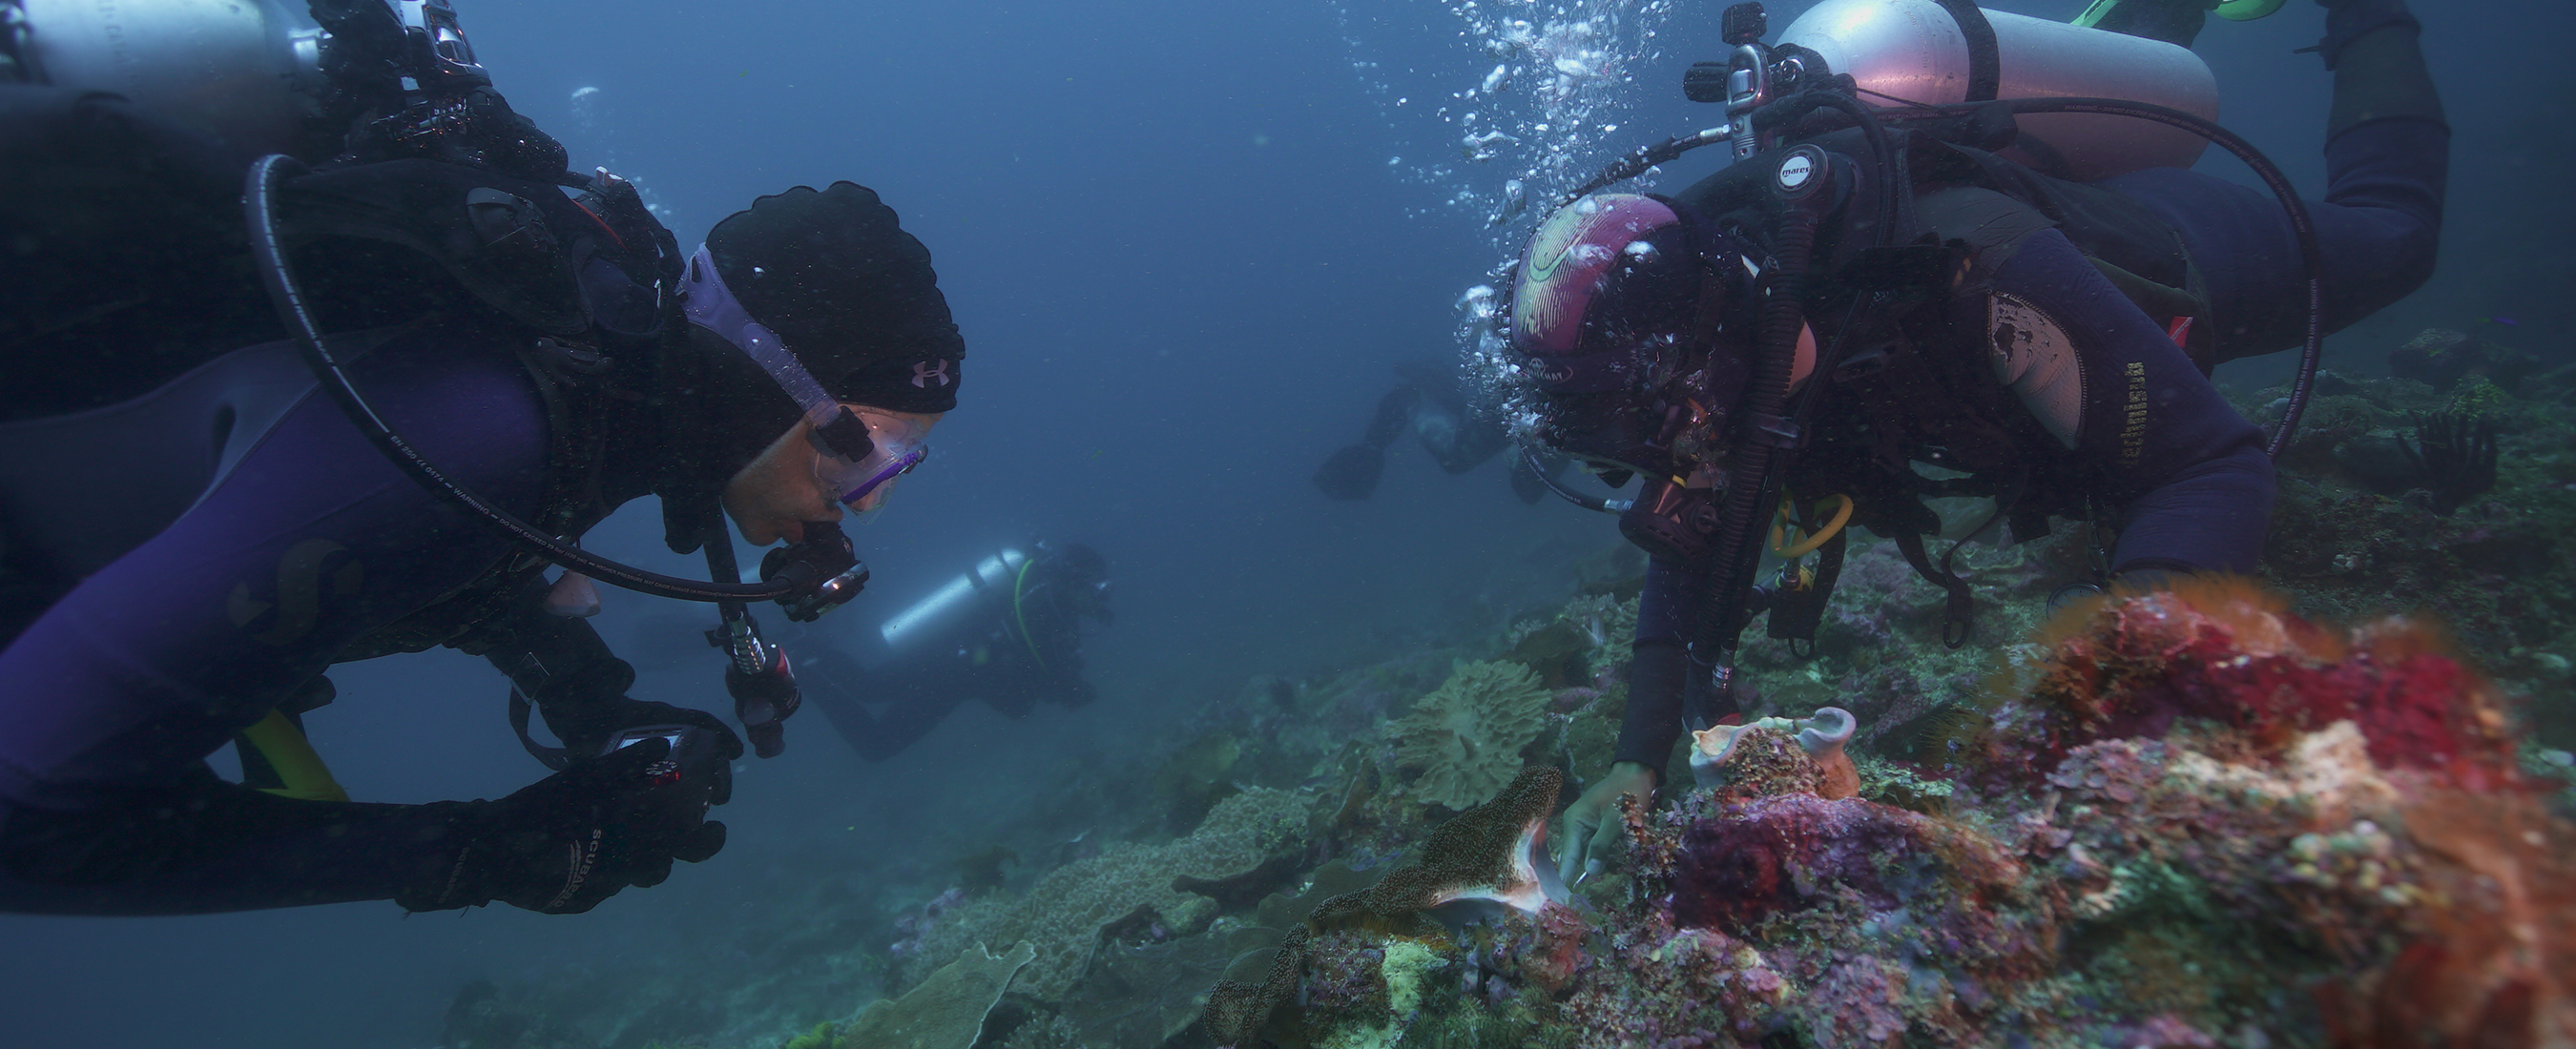 Three people scuba diving near a coral reef